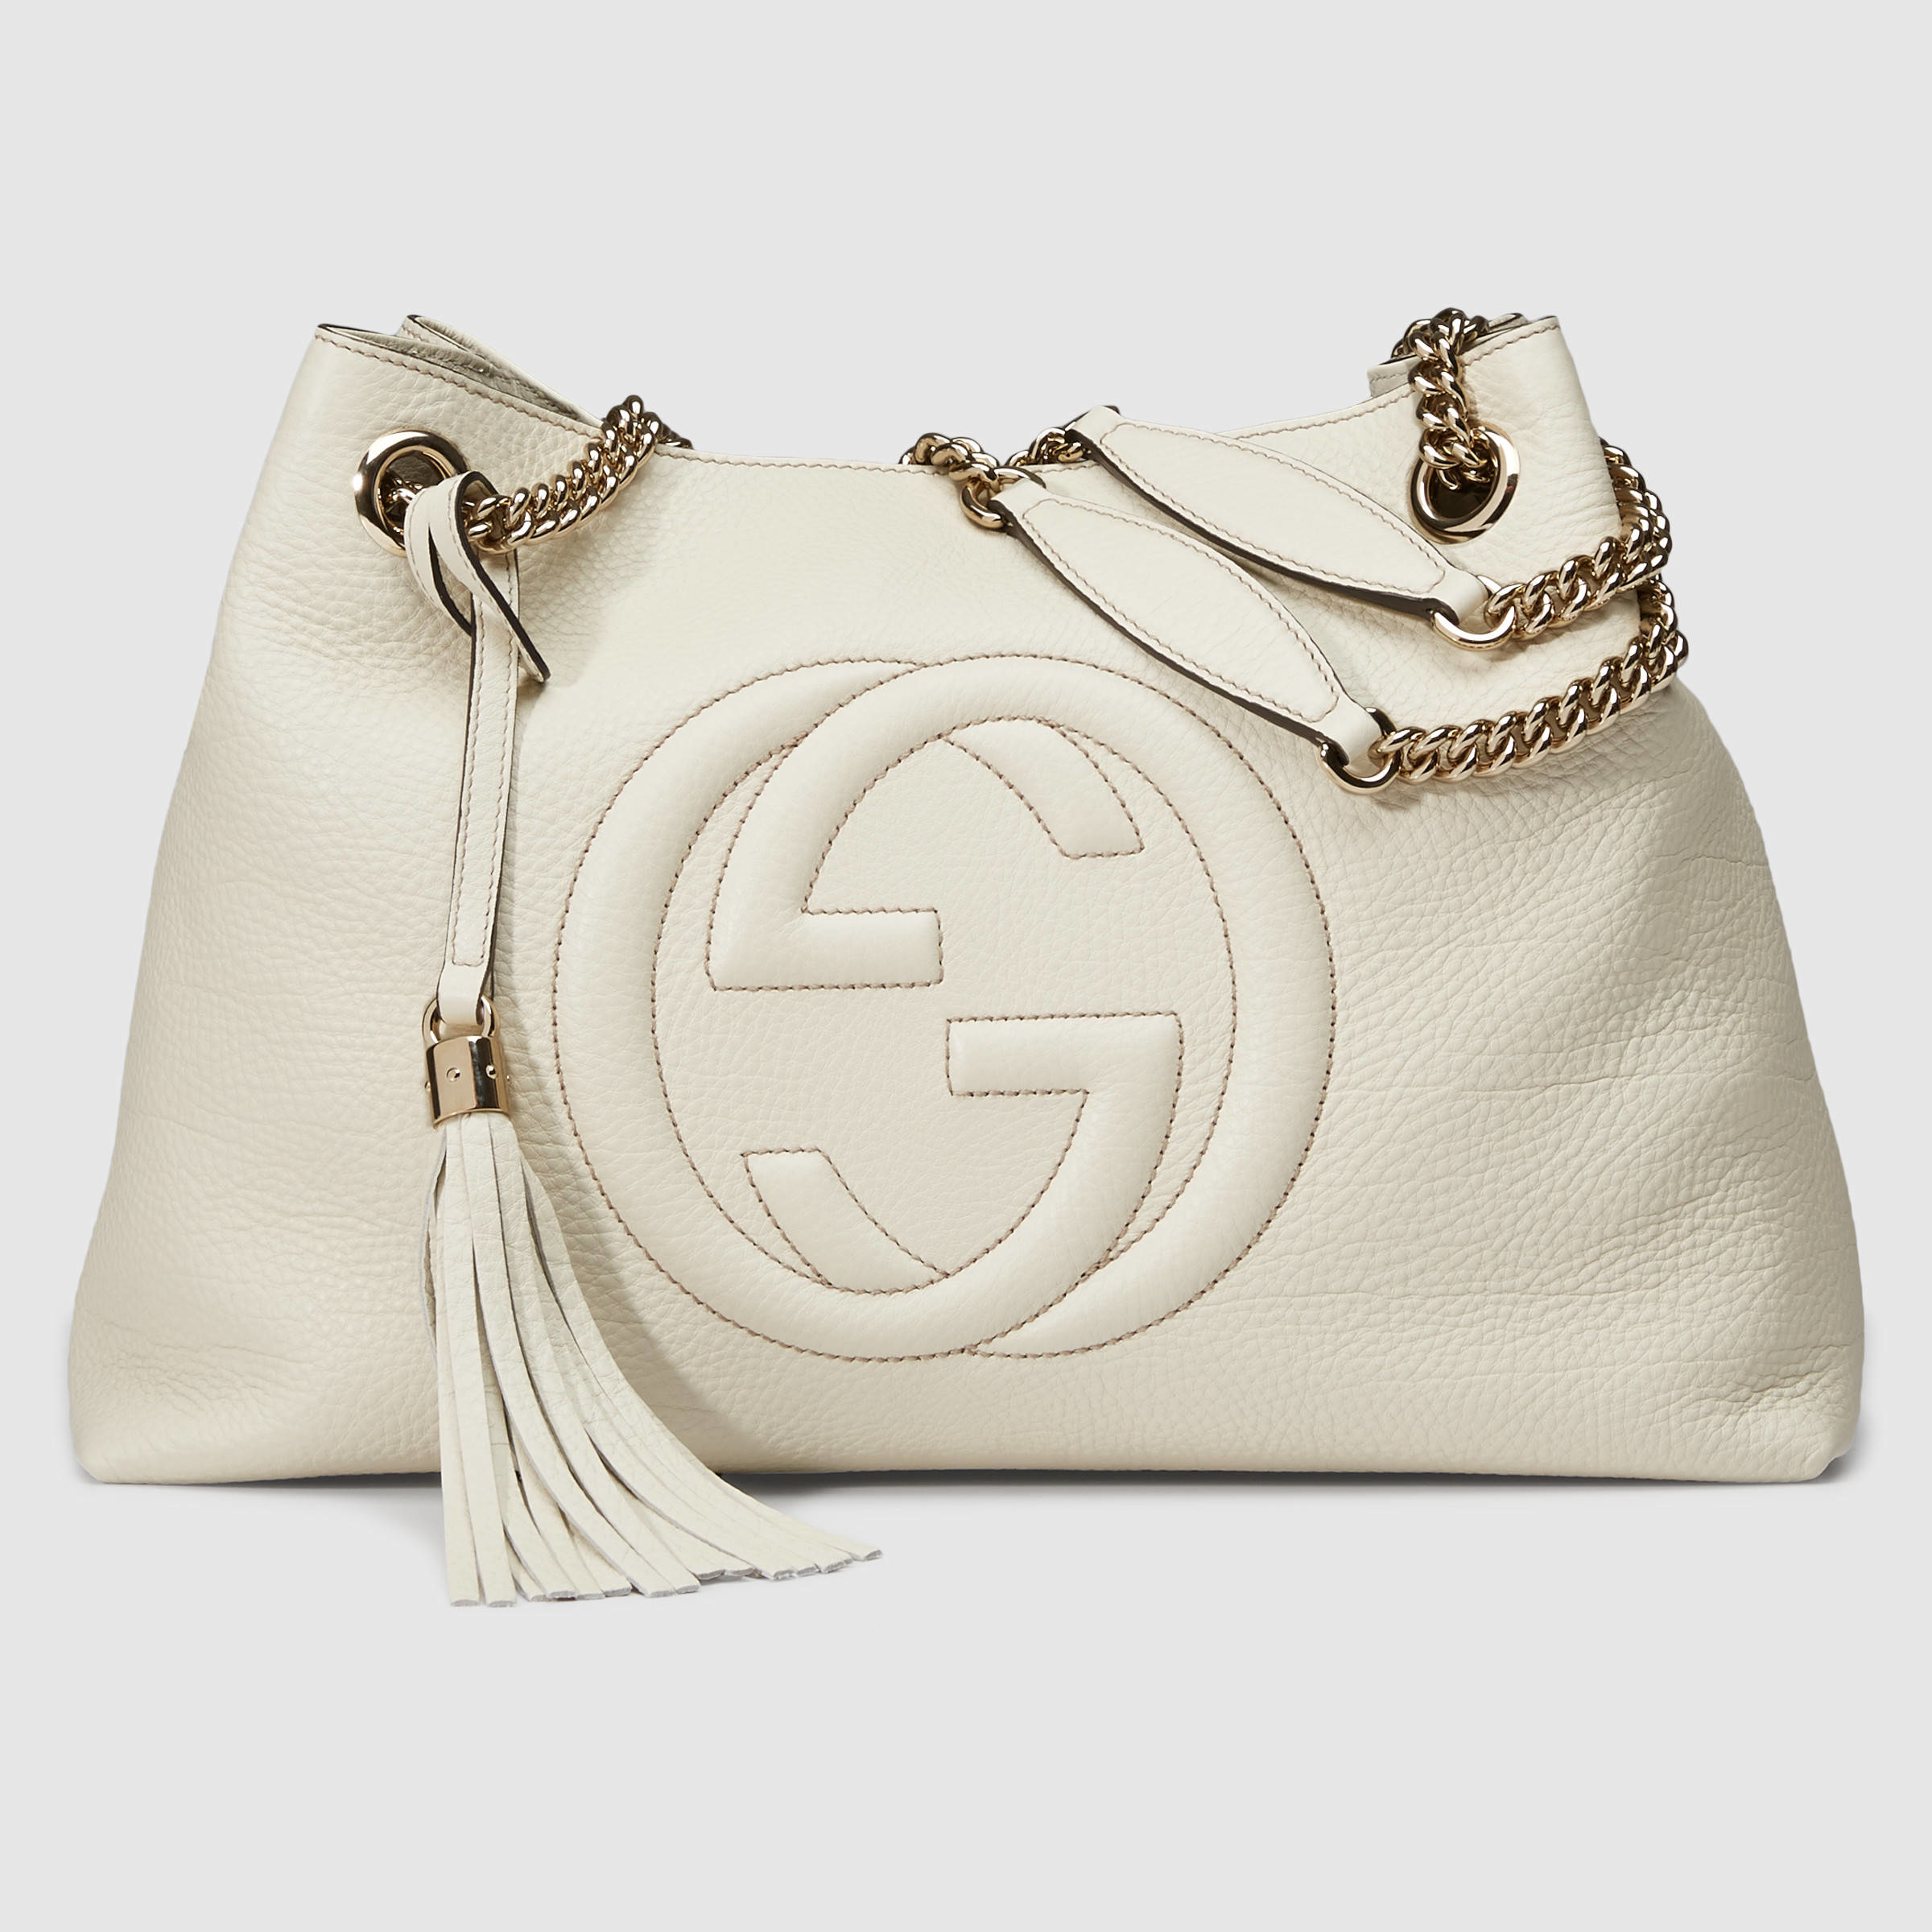 lyst gucci soho leather shoulder bag in white. Black Bedroom Furniture Sets. Home Design Ideas